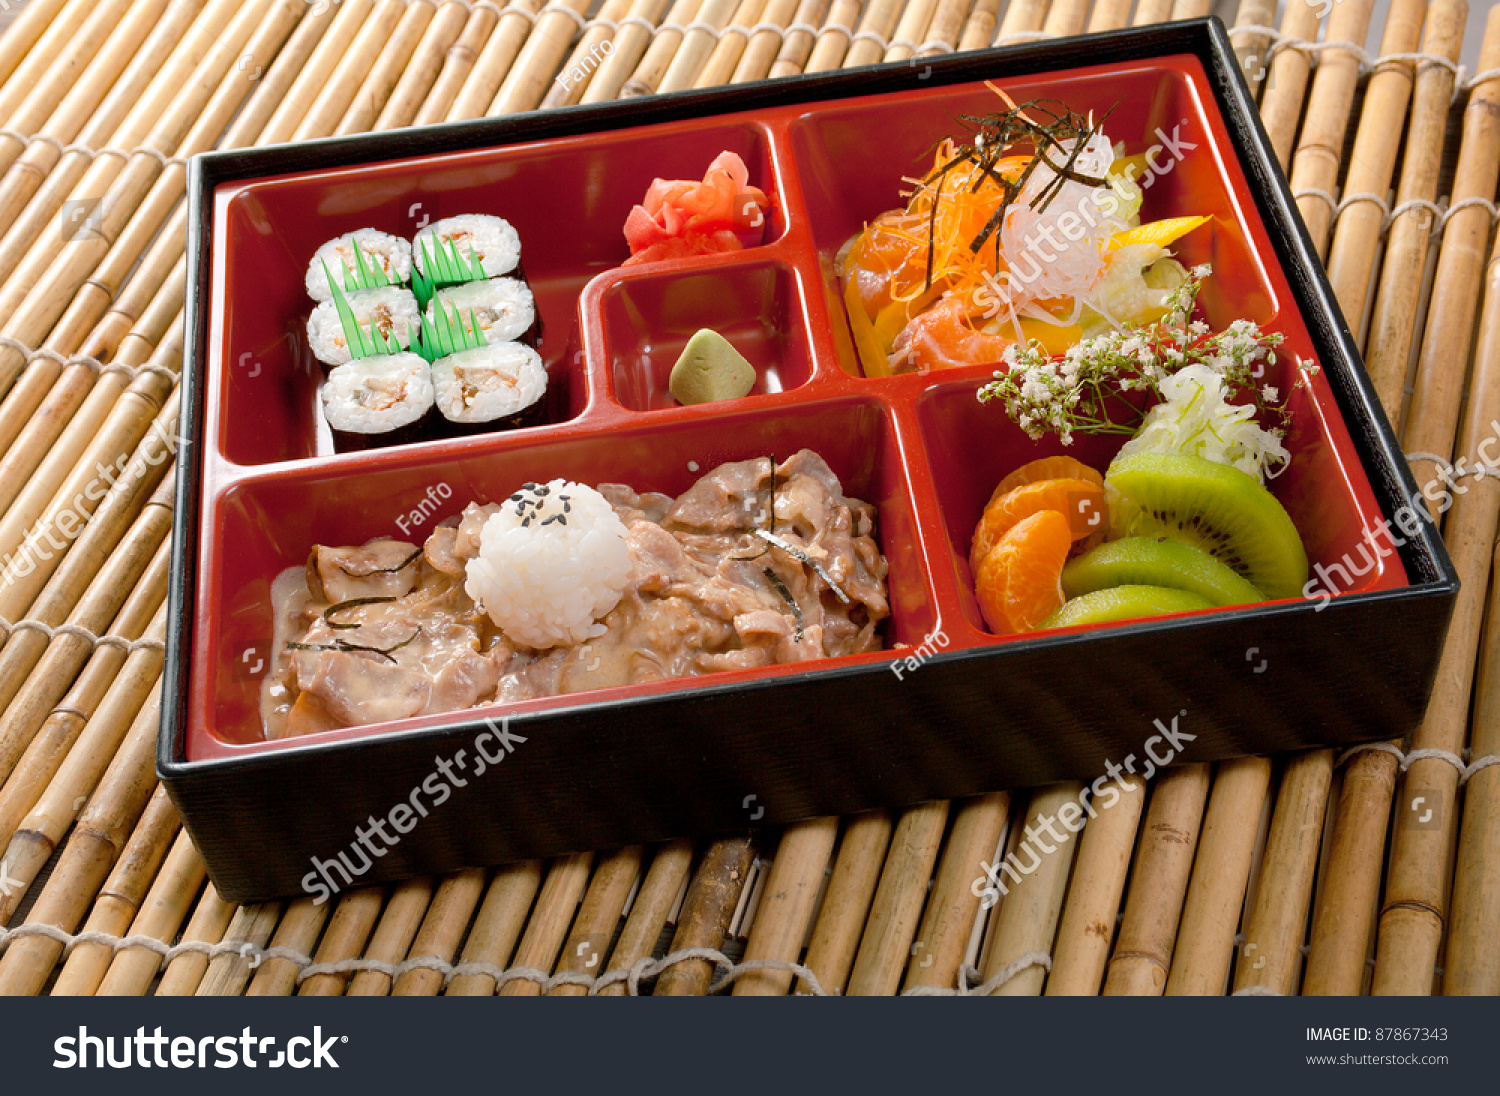 japanese bento lunch box of fast food with with pork stock photo 87867343 shutterstock. Black Bedroom Furniture Sets. Home Design Ideas